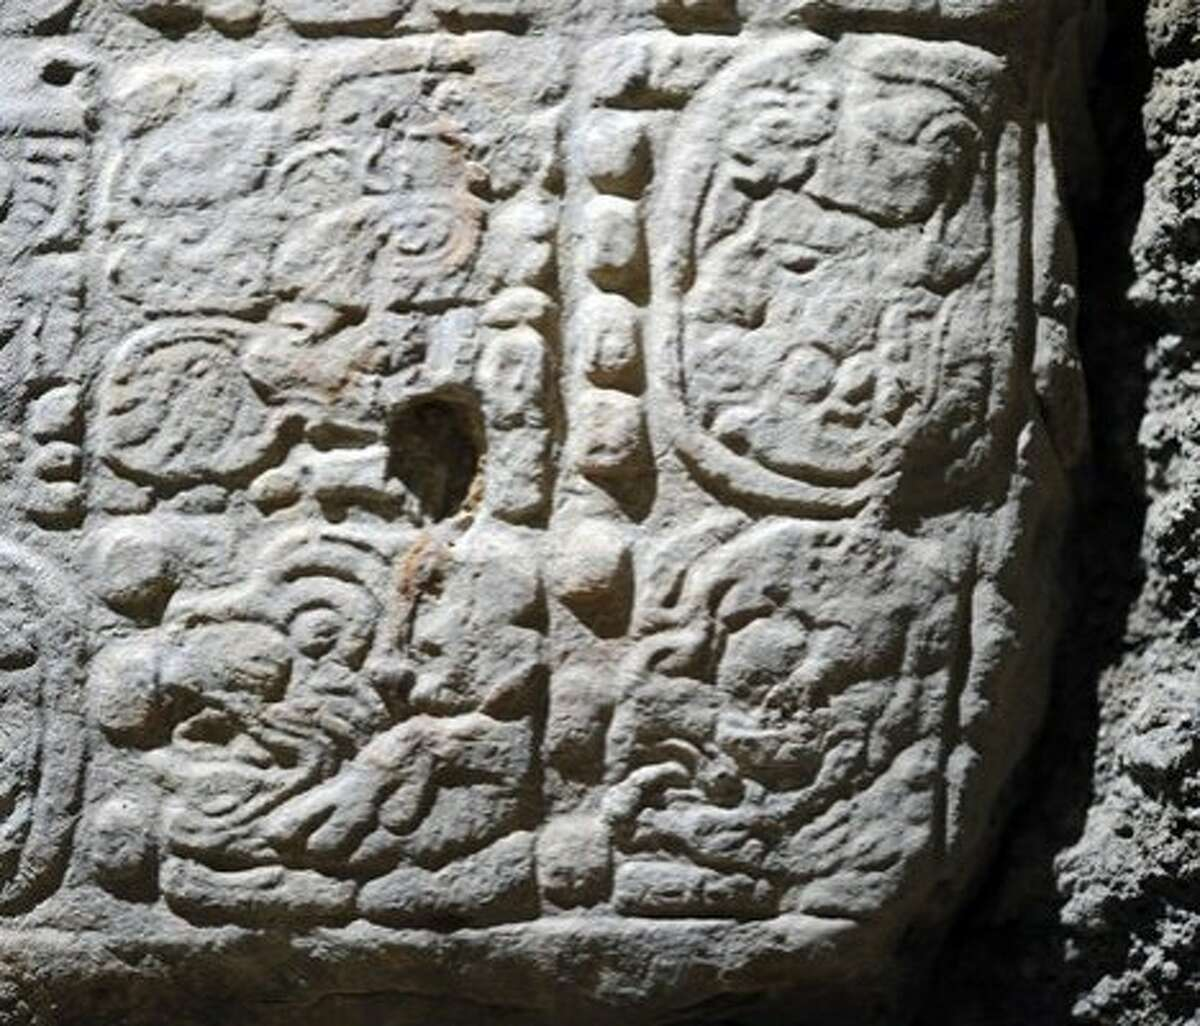 This glyph, a 1,300-year-old Guatemalan stone inscription, says